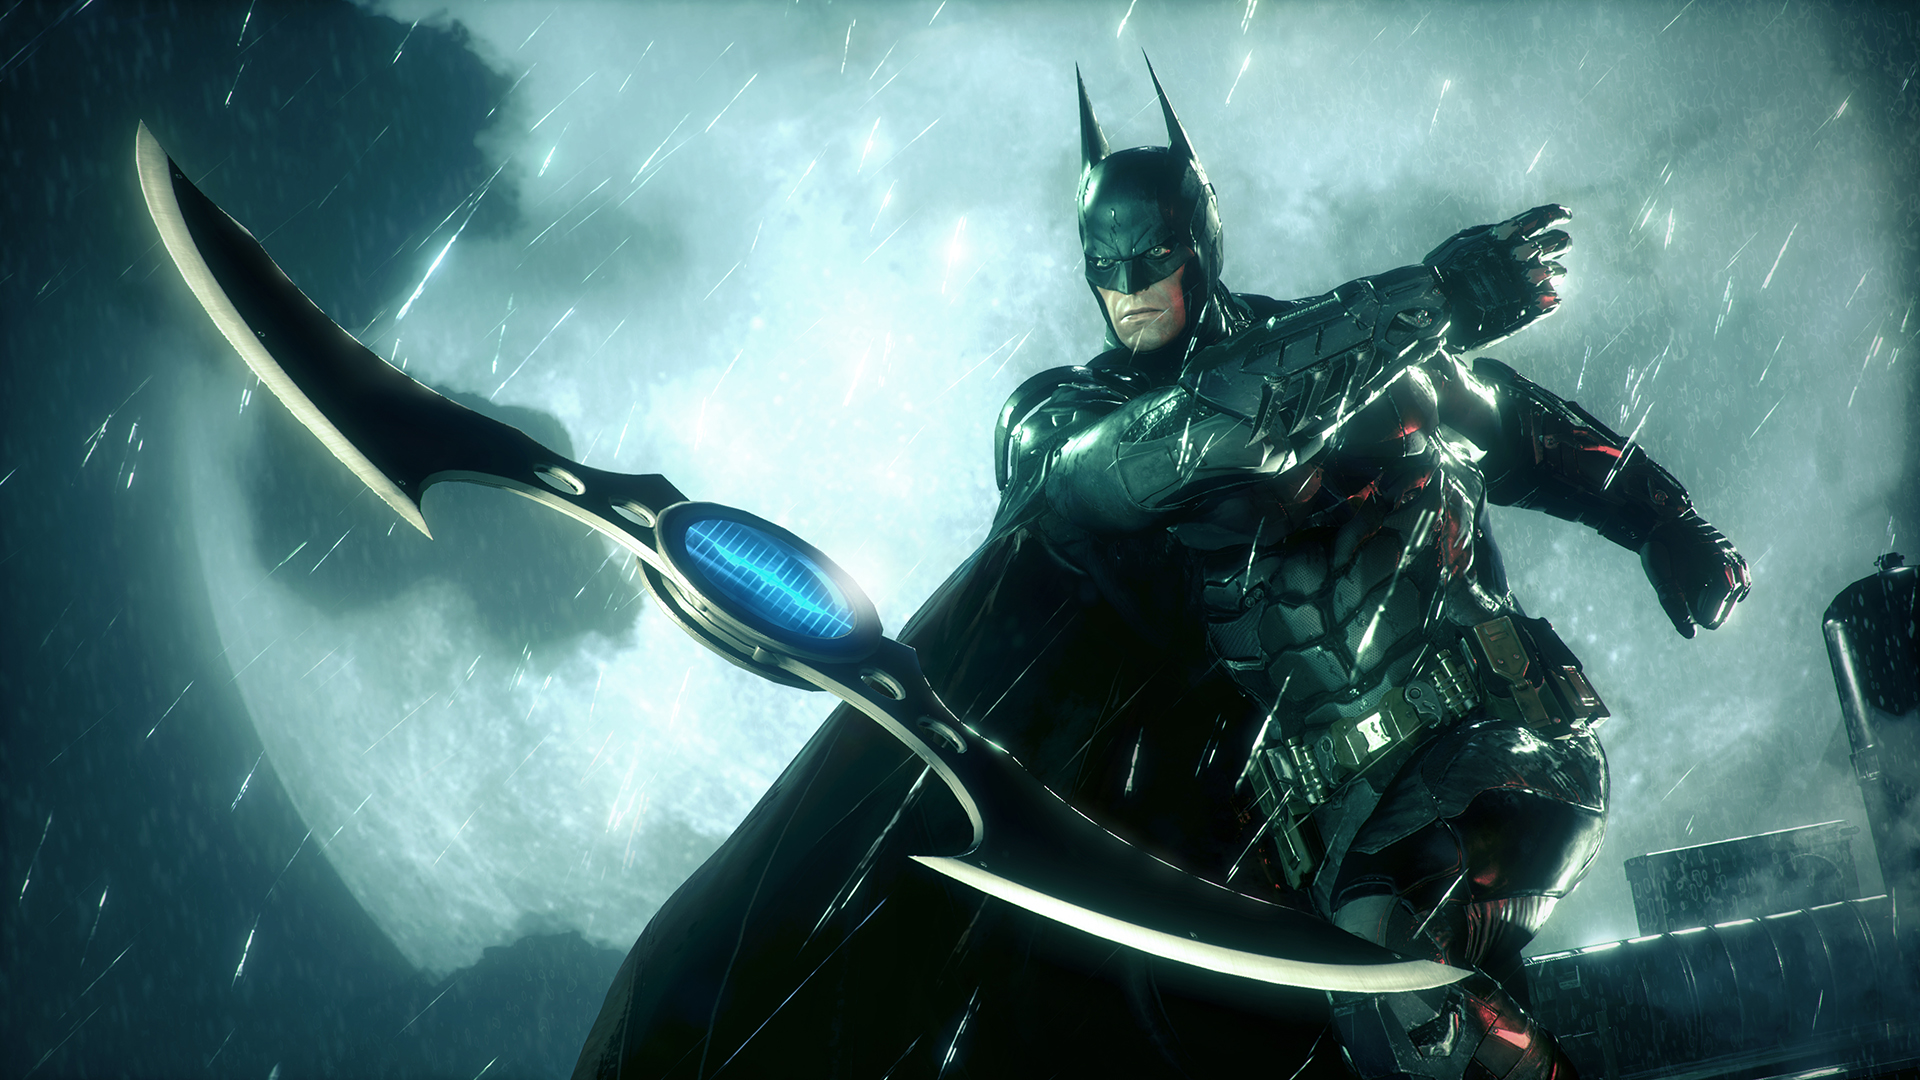 Batman arkham knight pron sexual images